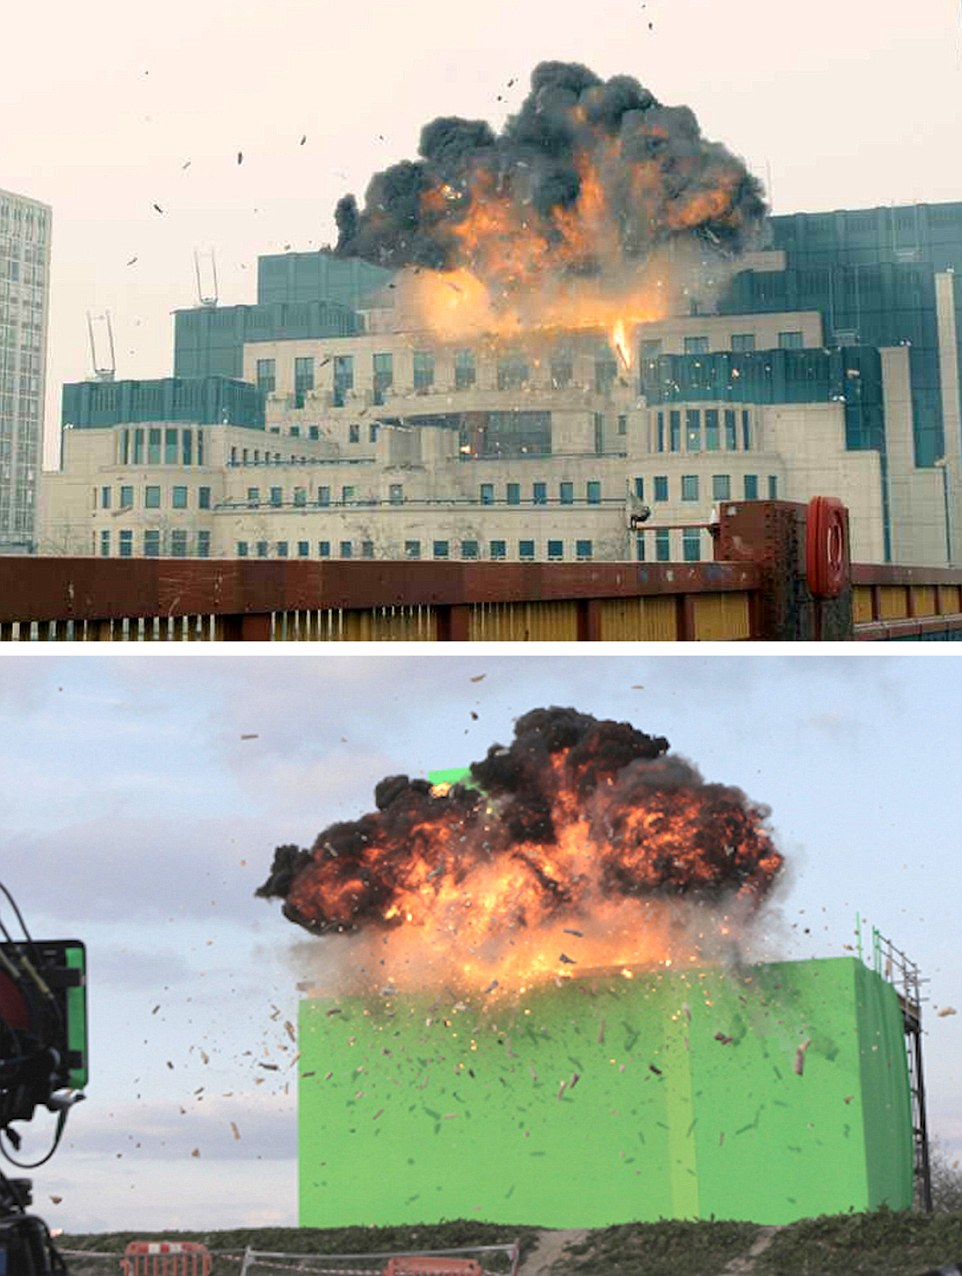 SPECIAL EFFECTS MAN BEHIND JAMES BOND